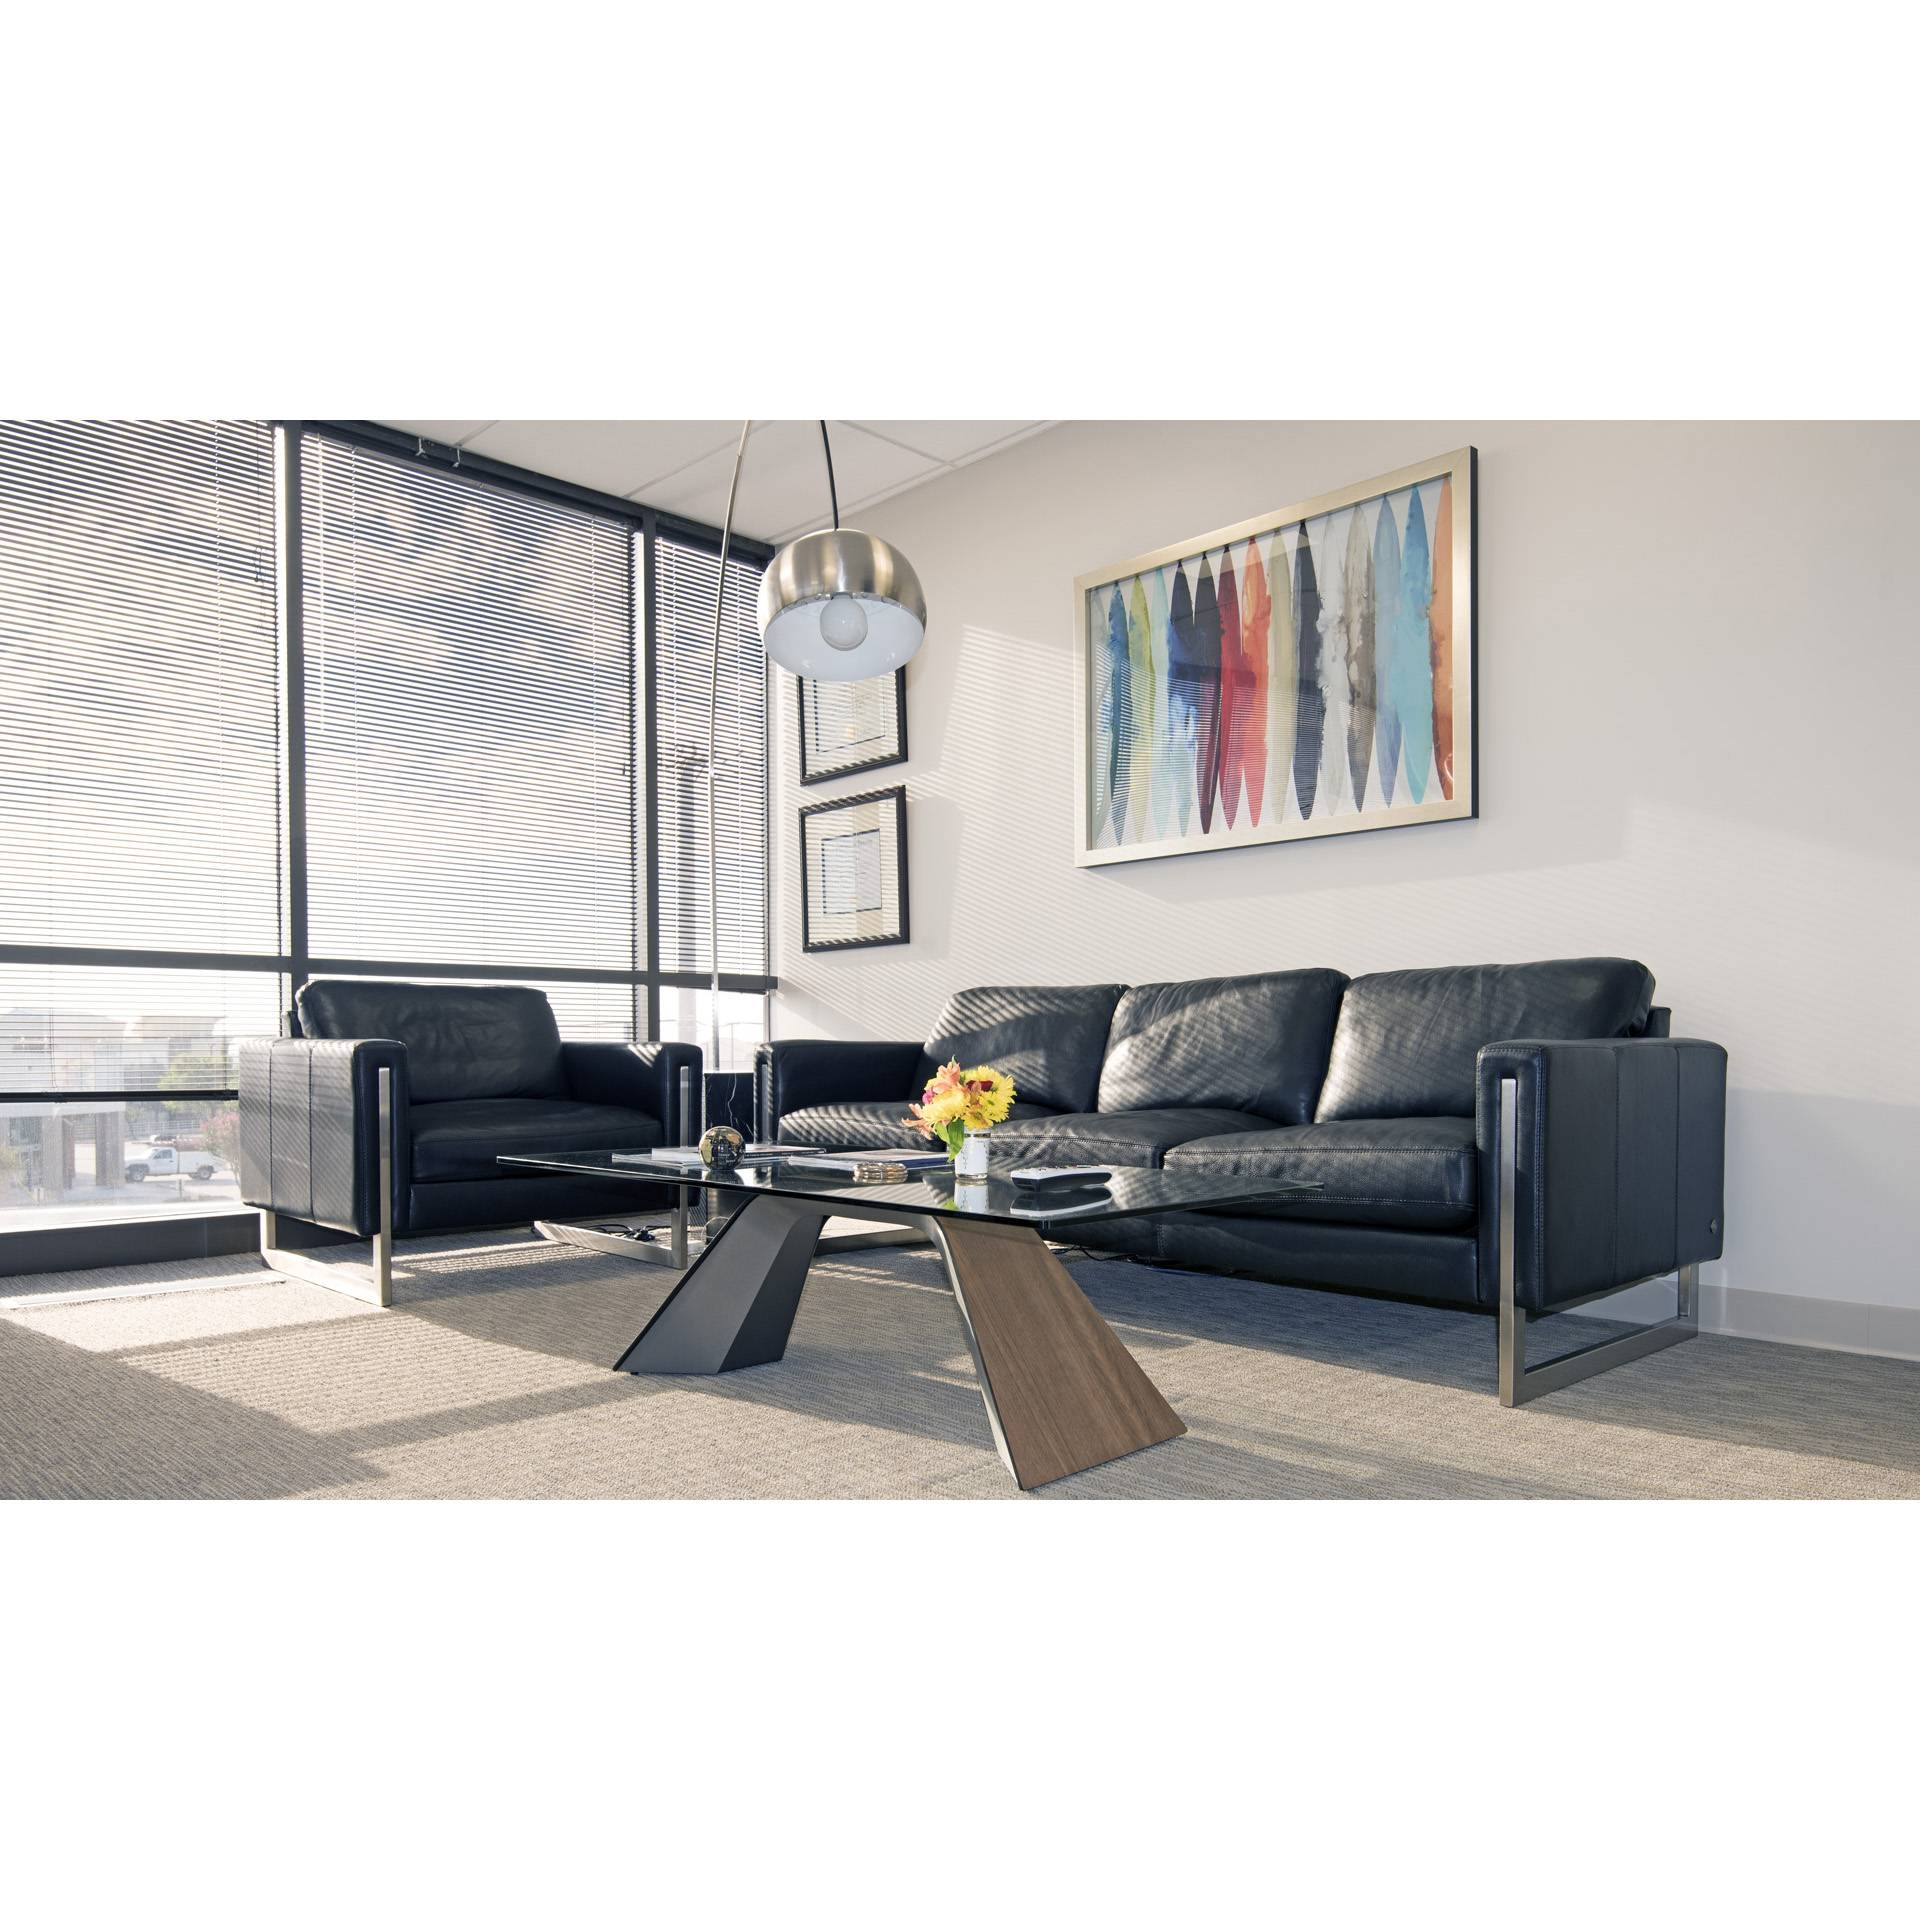 Modern Sofas Savinoamerican Leather Black | Cantoni within Cantoni Sofas (Image 10 of 15)